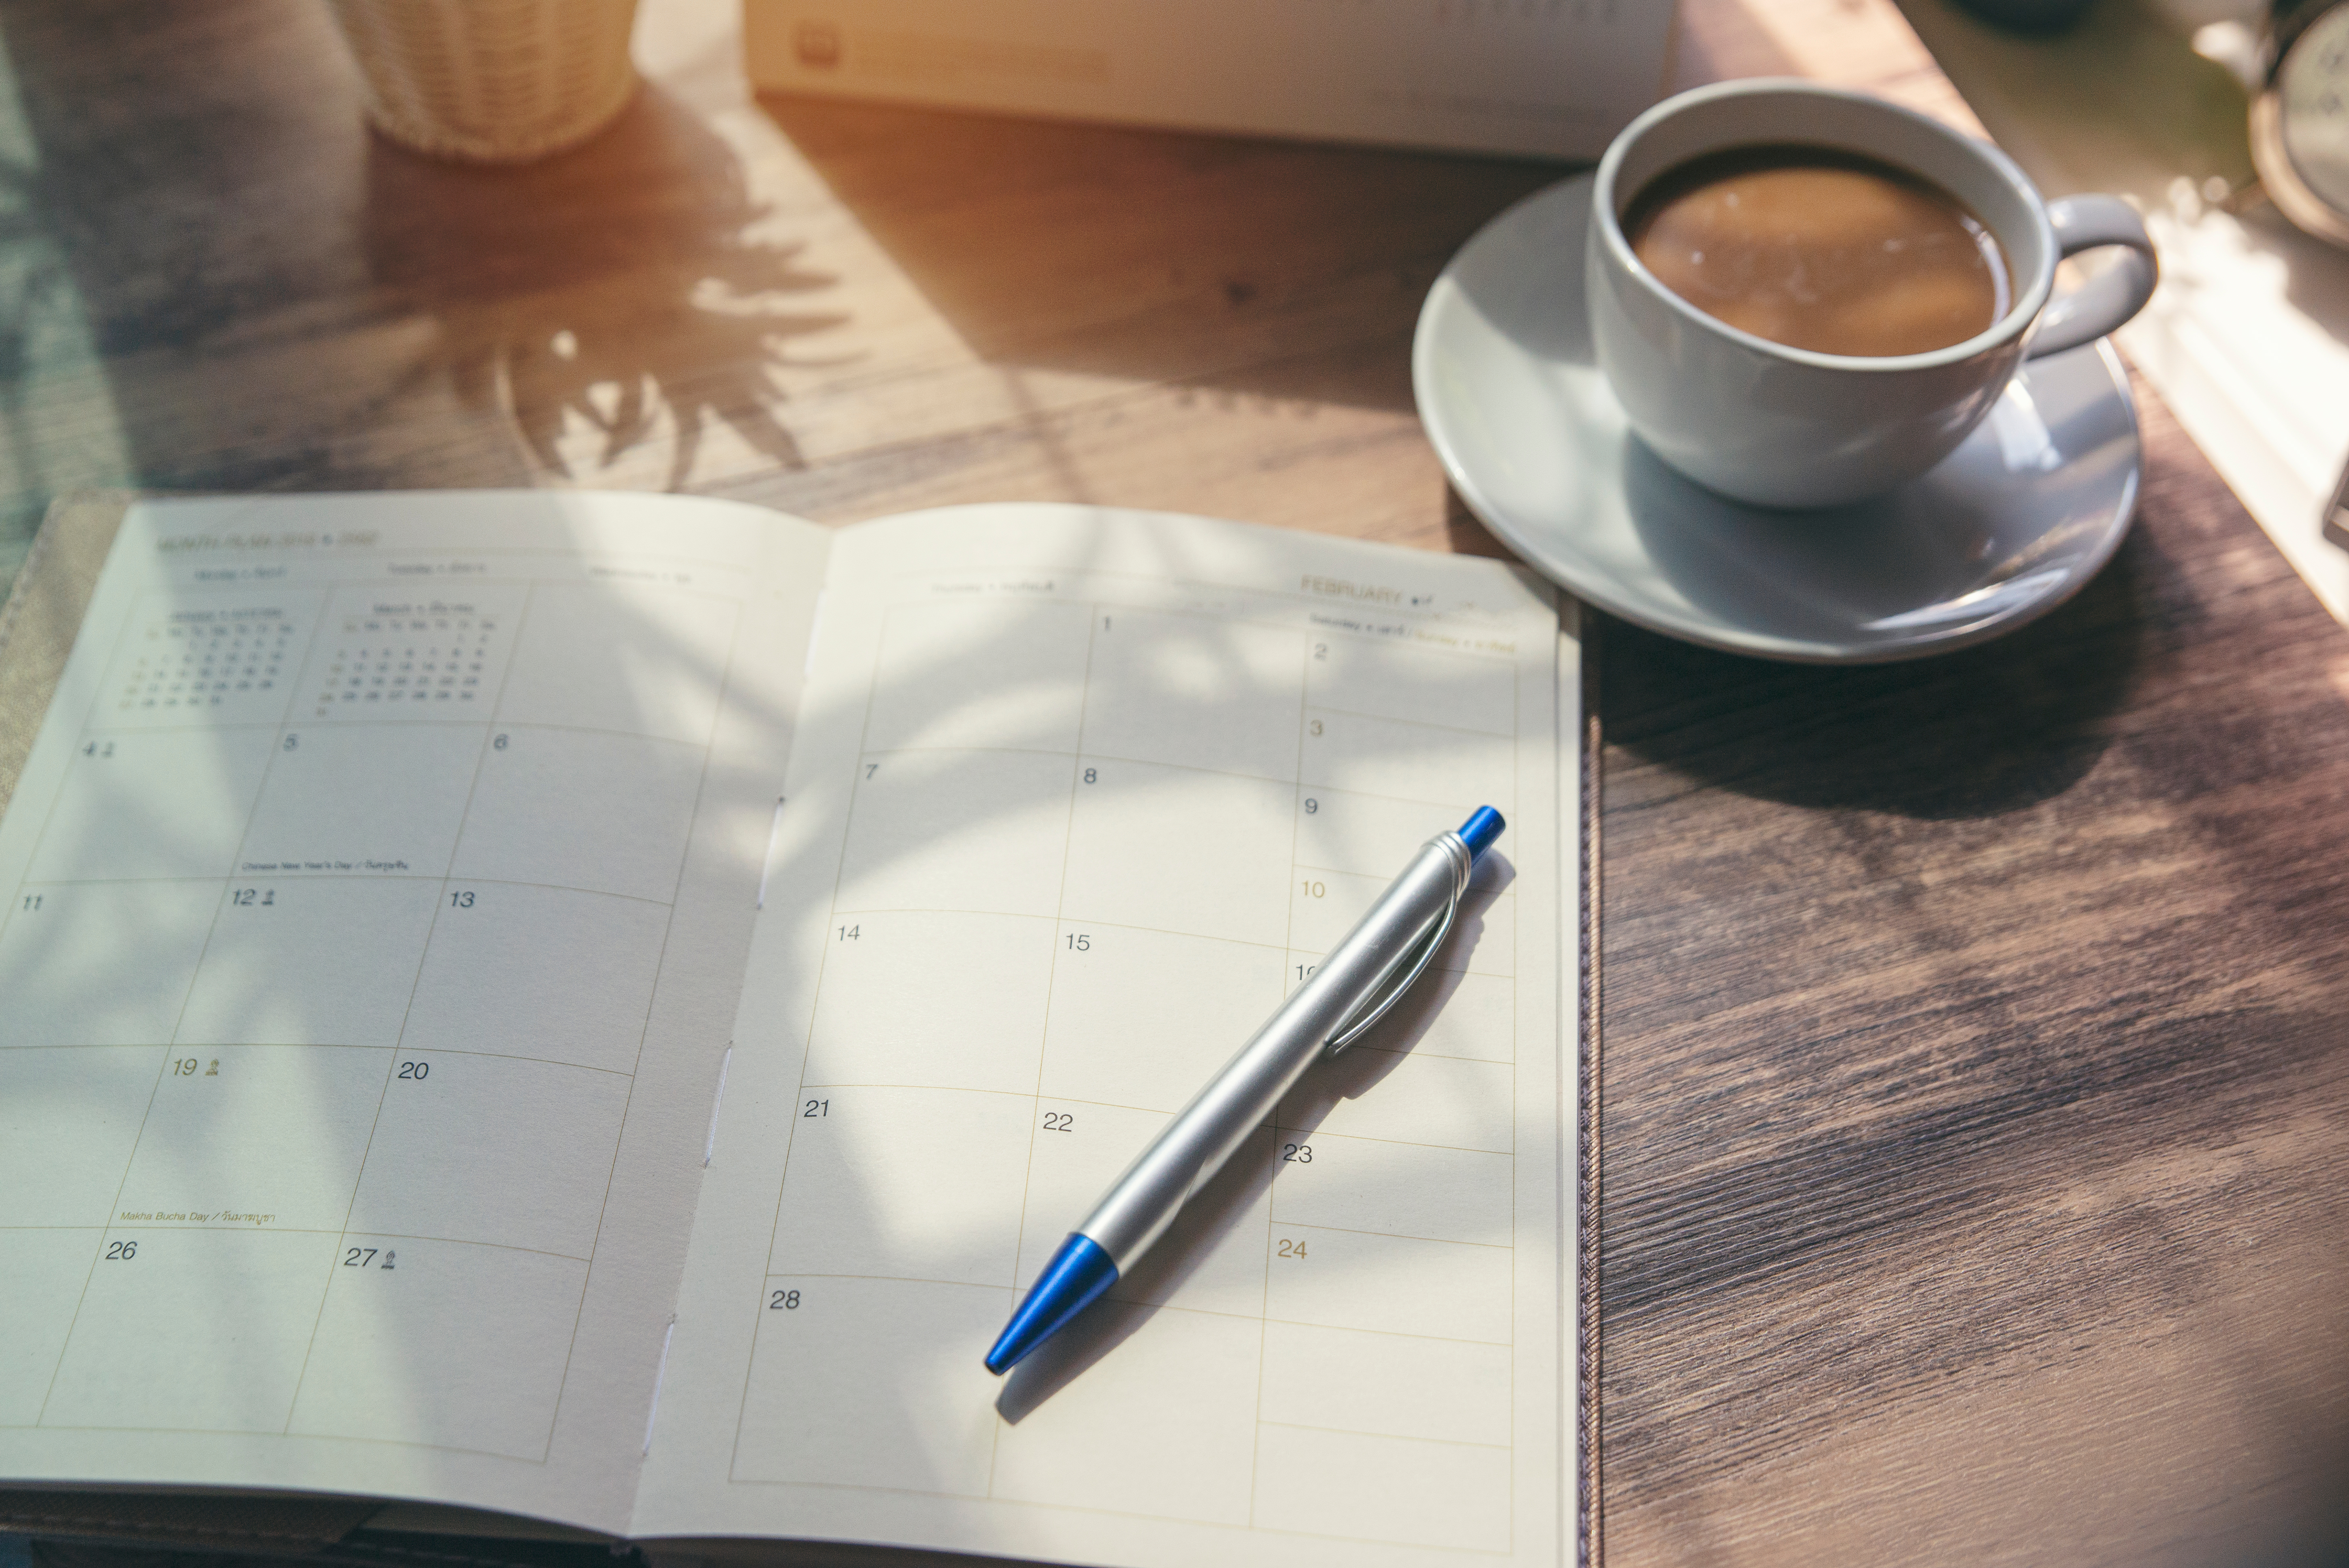 planner on a table with some coffee